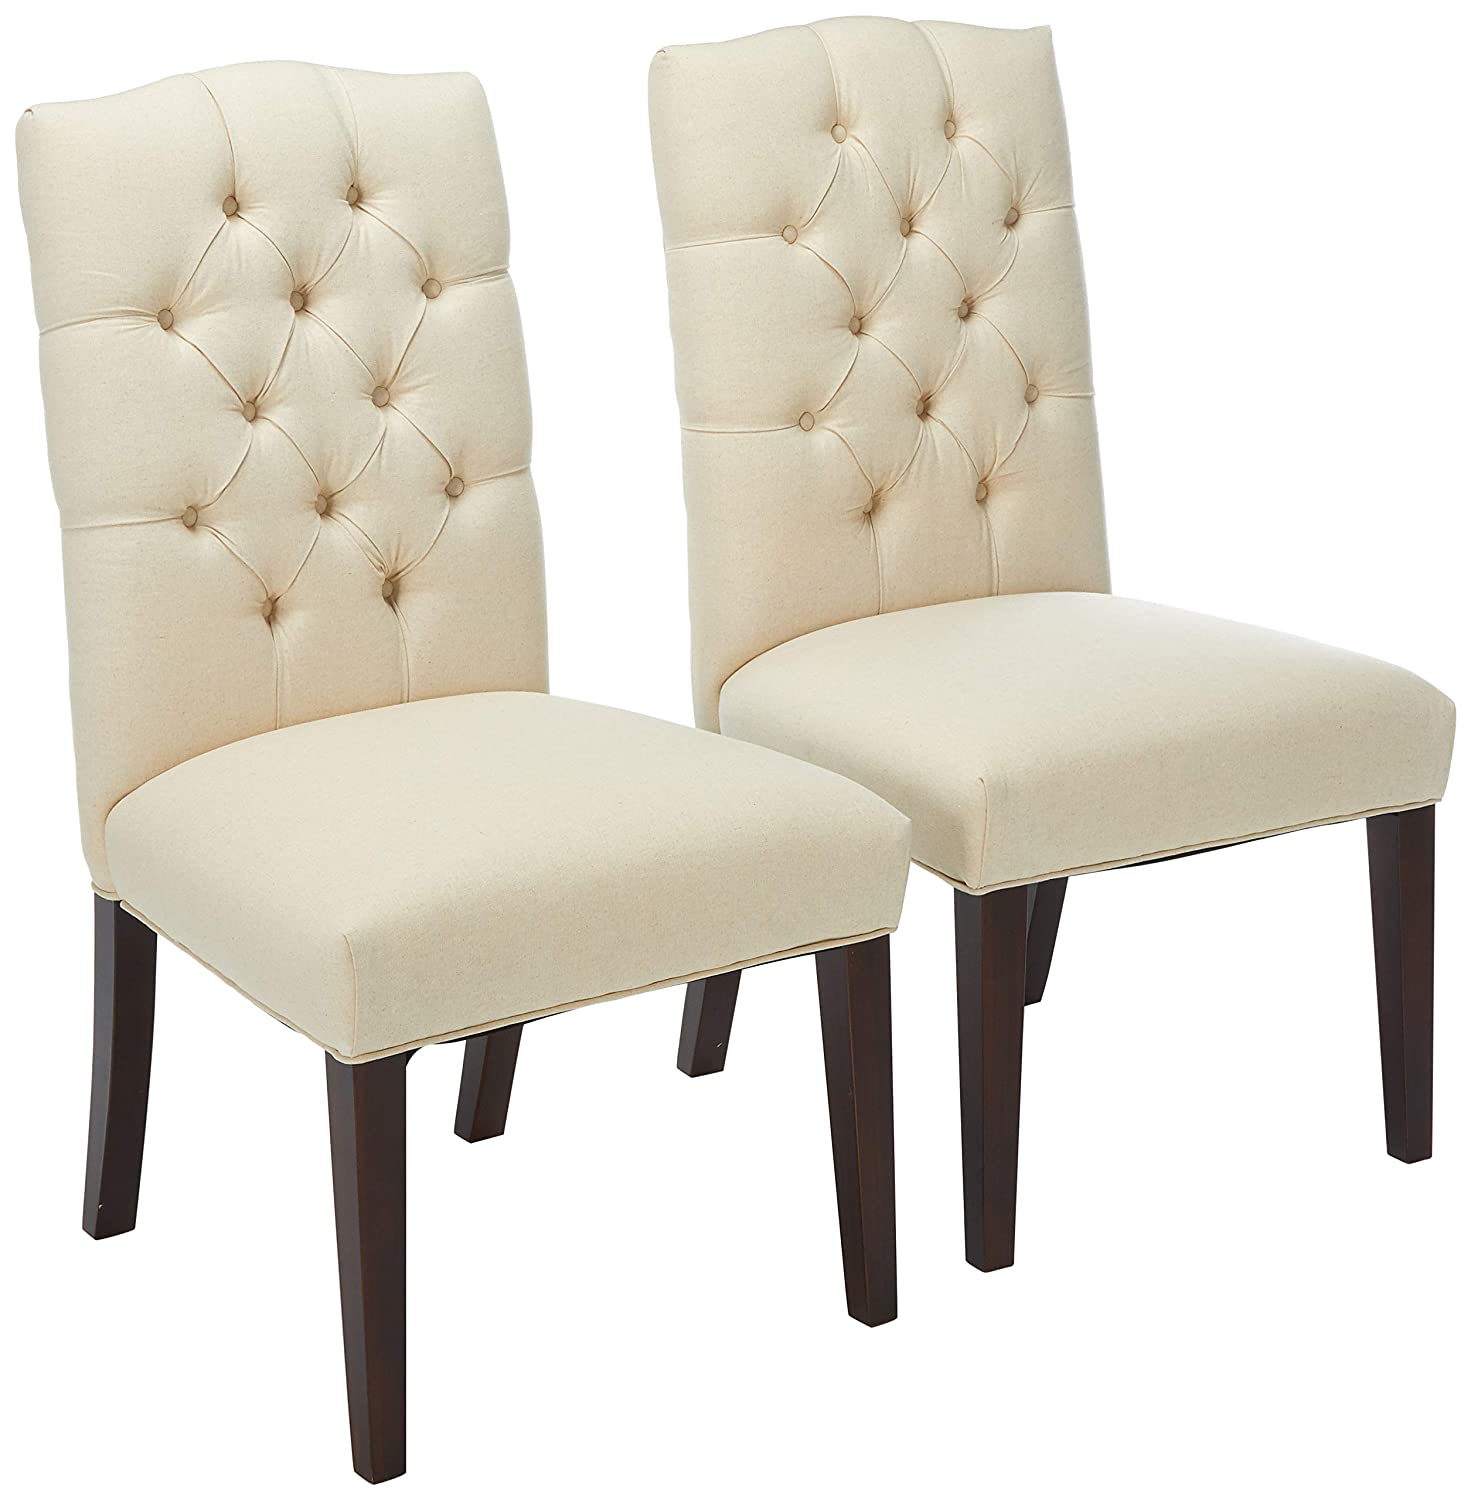 Amazon com great deal furniture clark elegant upholstered dining chairs w button tufted backrest set of 2 chairs